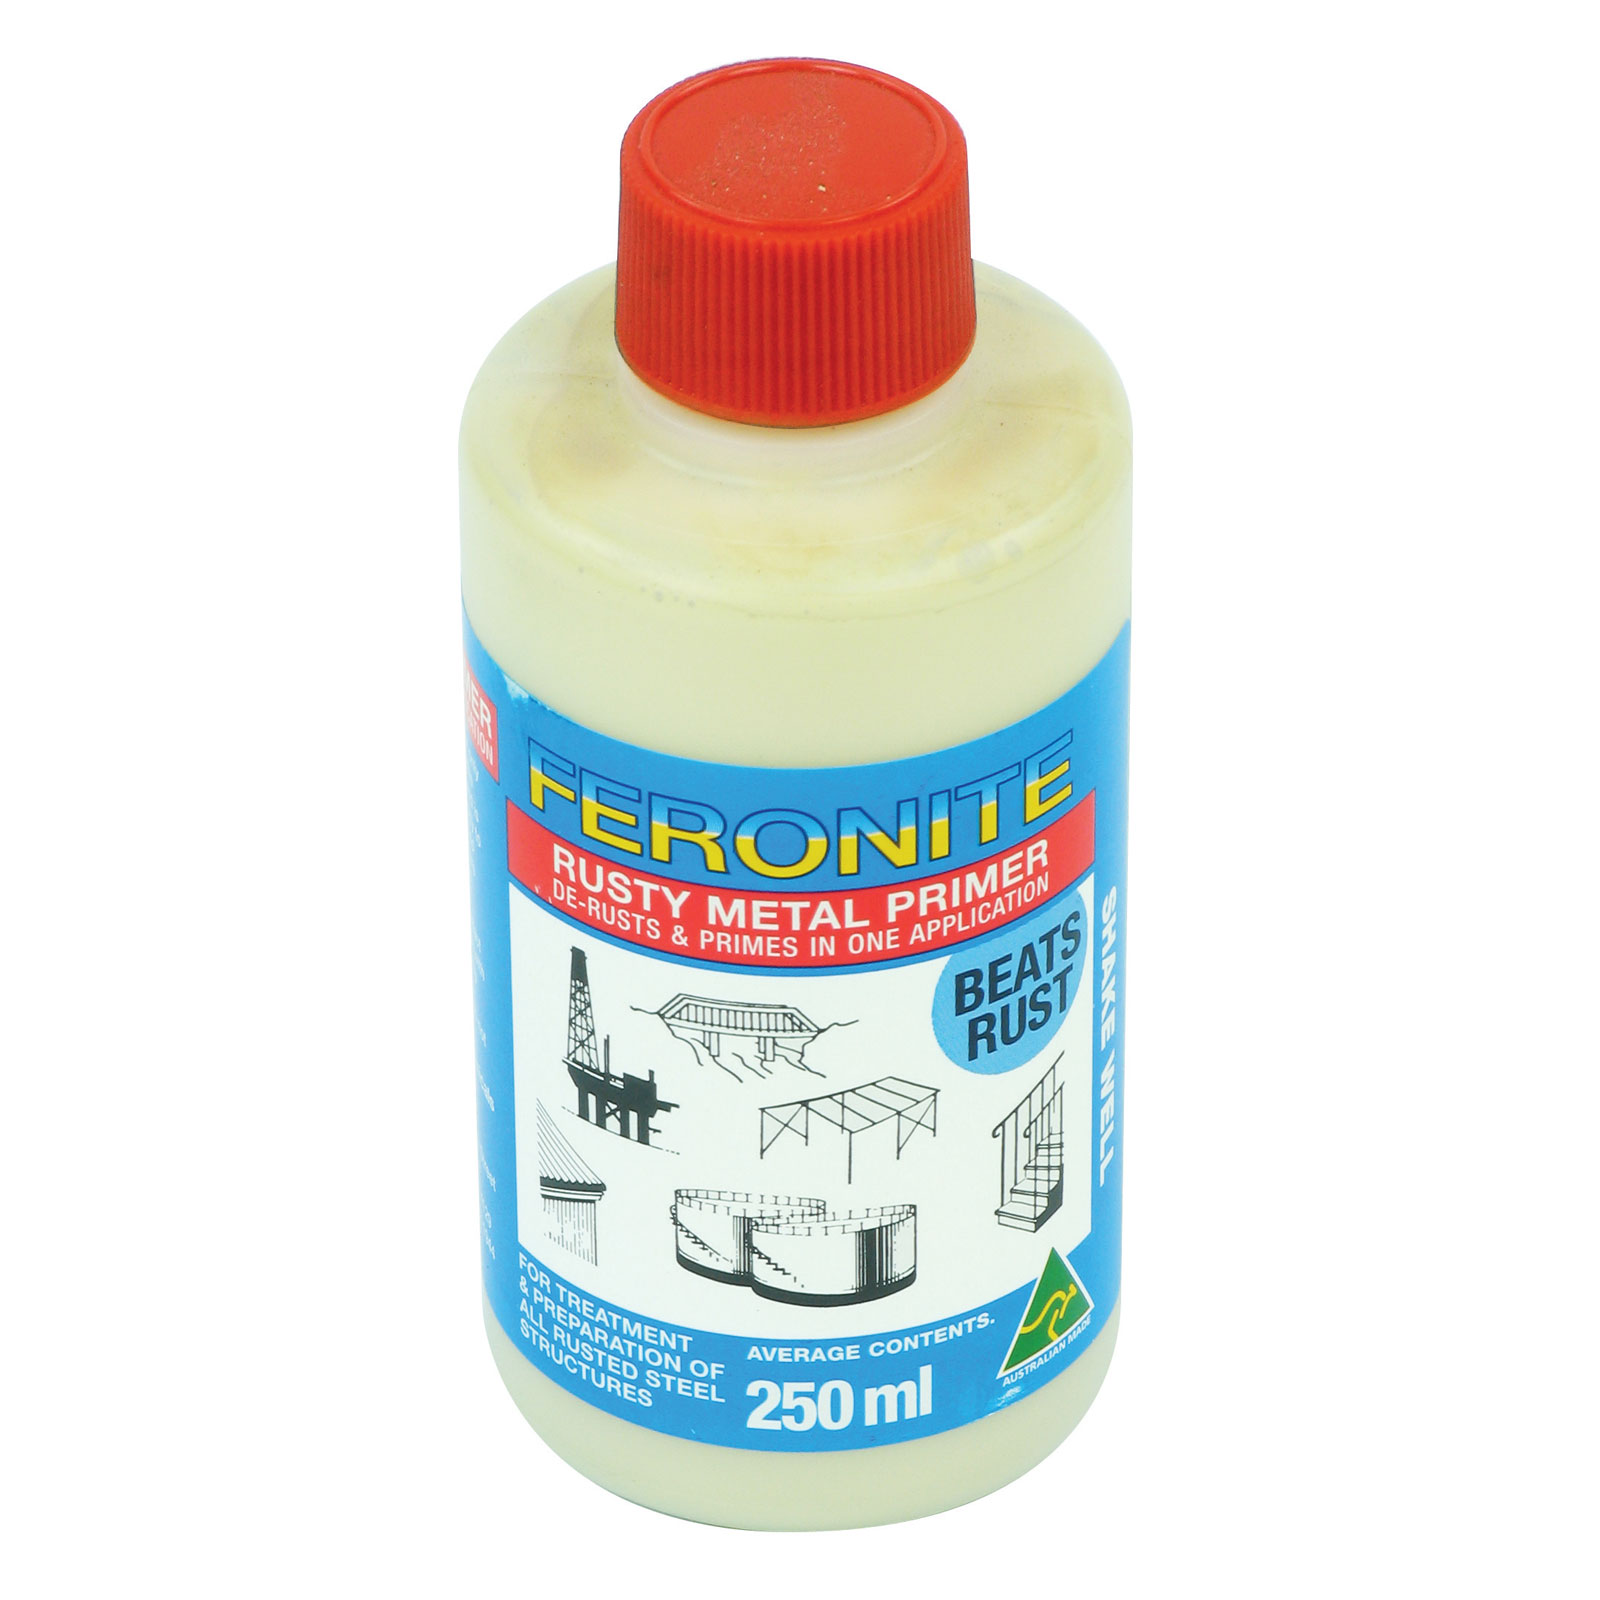 Feronite Rusty Metal Primer & Converter (2 in 1)